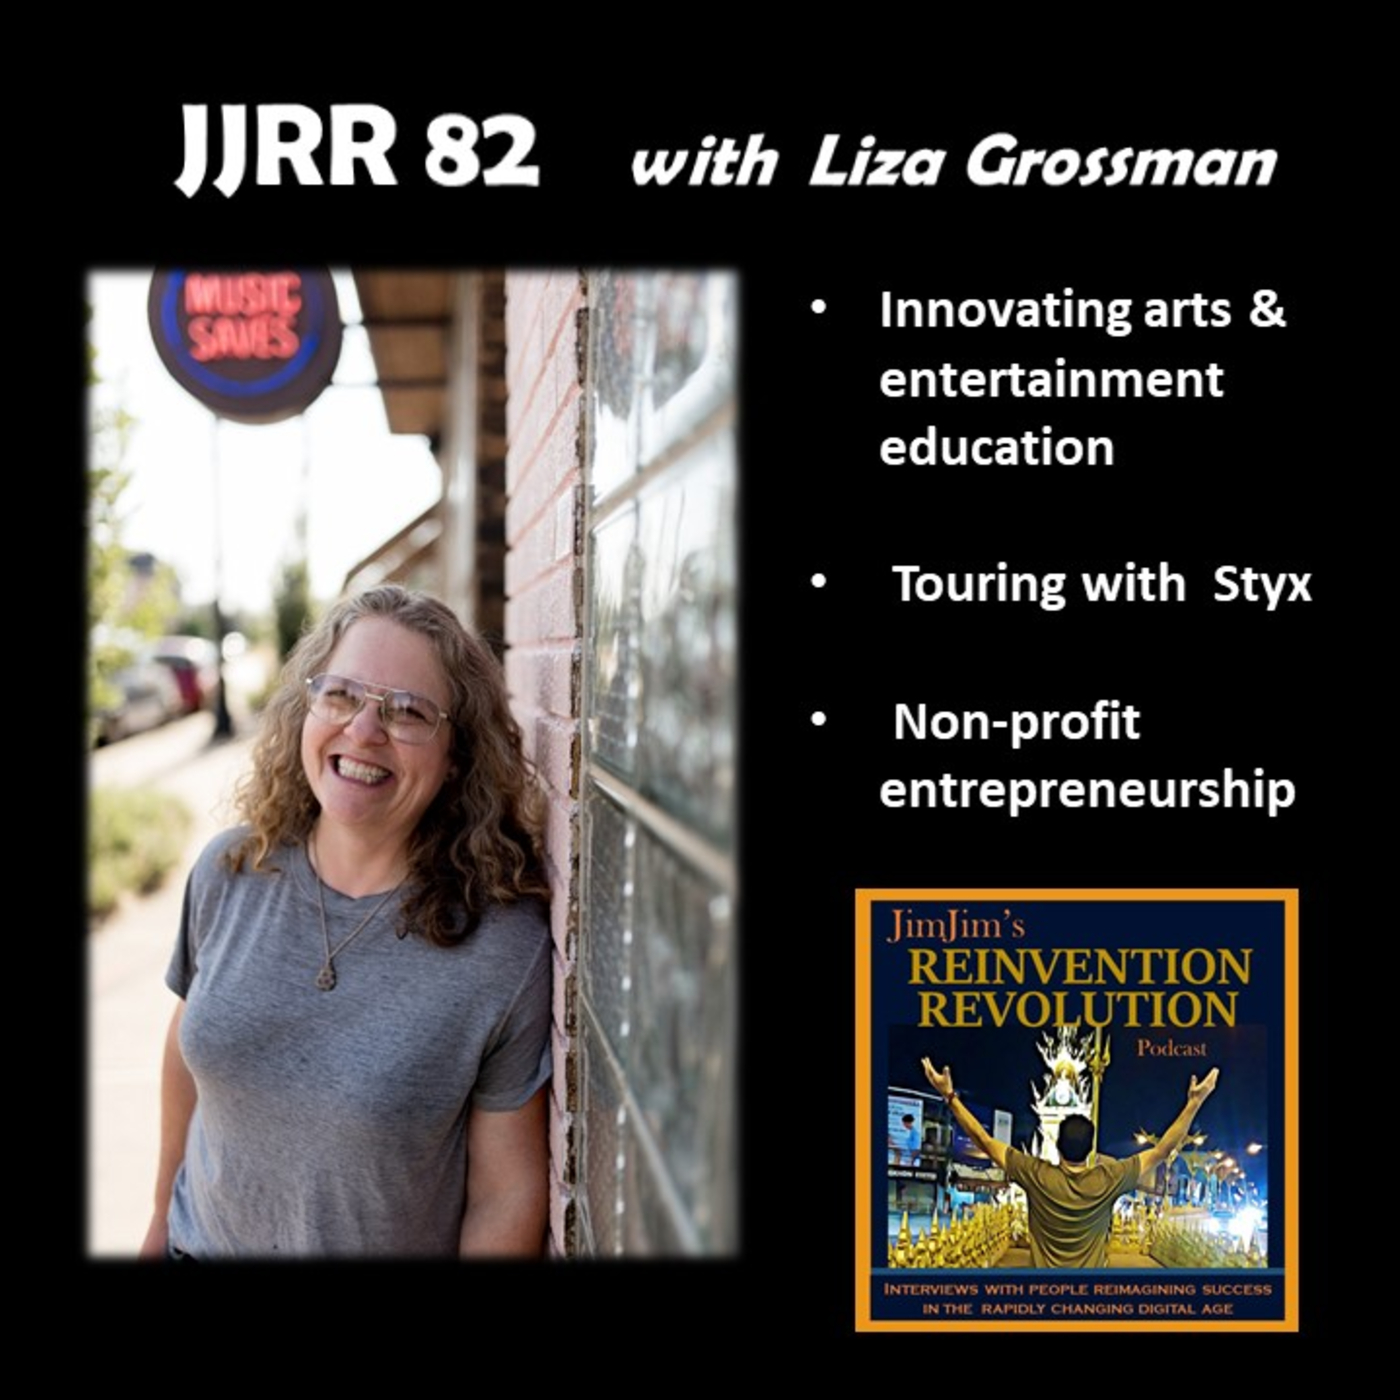 JJRR 82 Innovating arts and entertainment education – Touring with Styx – Non-profit entrepreneurship – with Liza Grossman